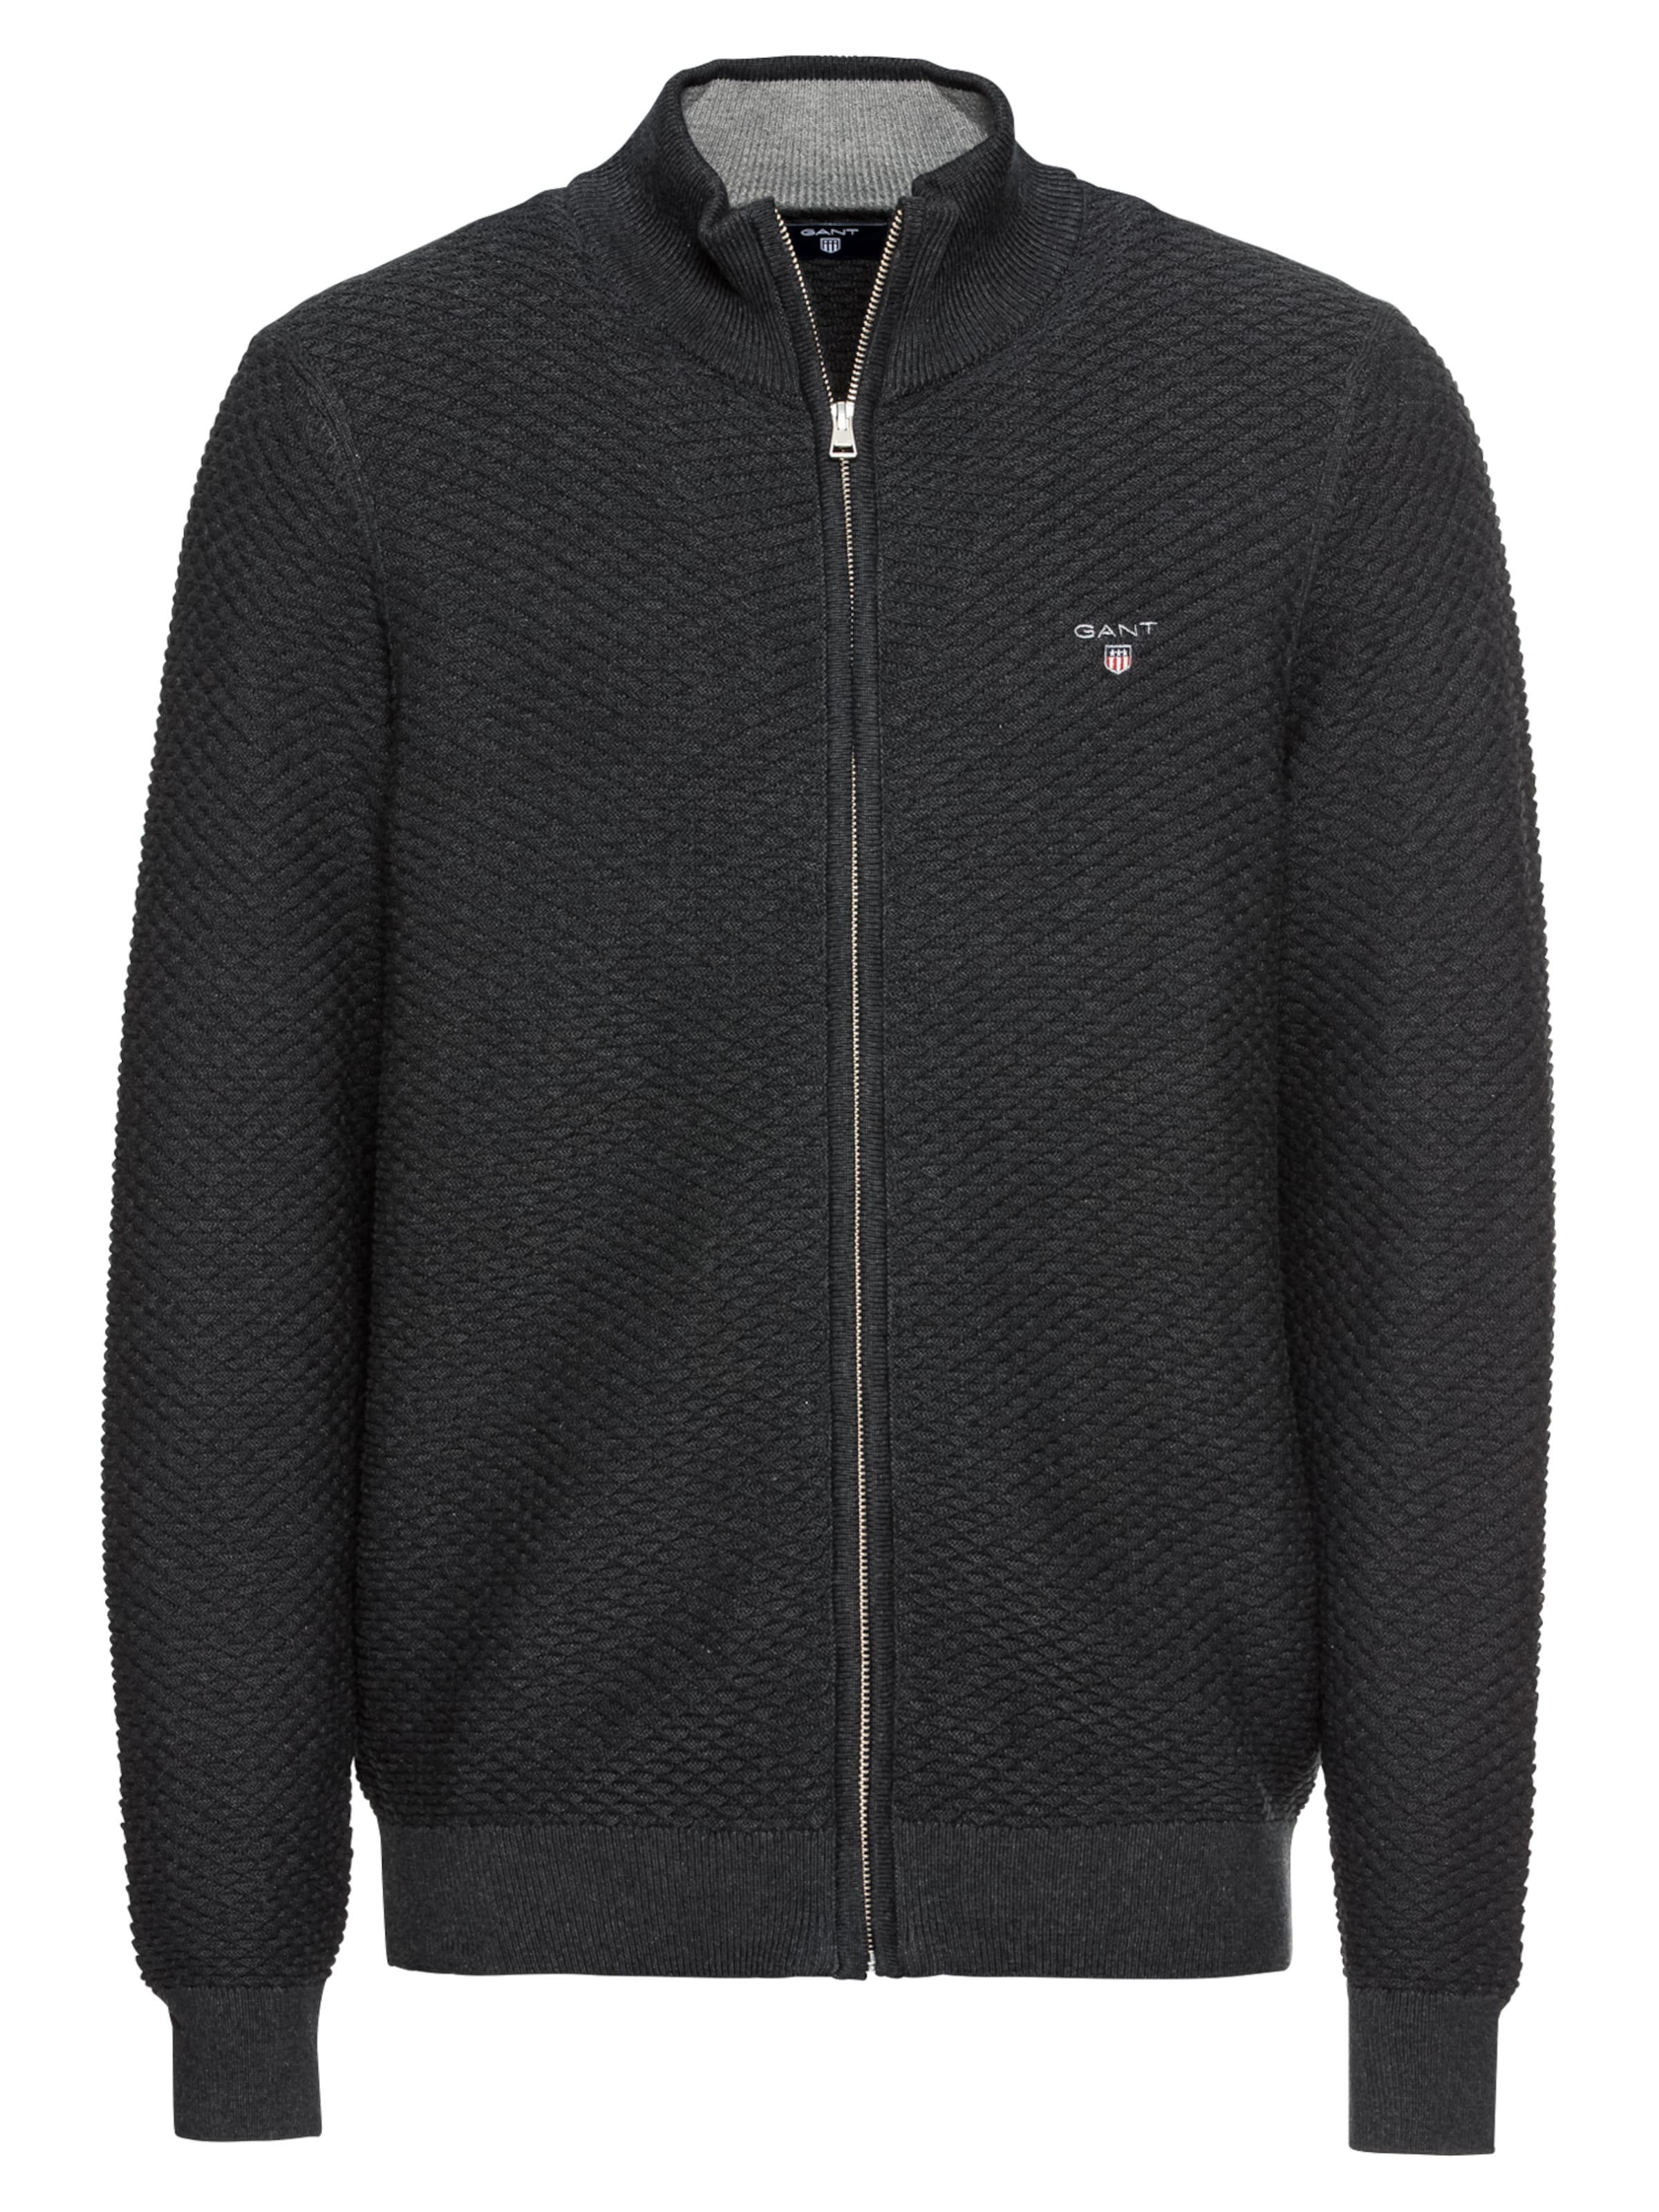 Anthracite Vestes 'o1 Fullzip' En Gant Maille triangle Texture Ygyf76b